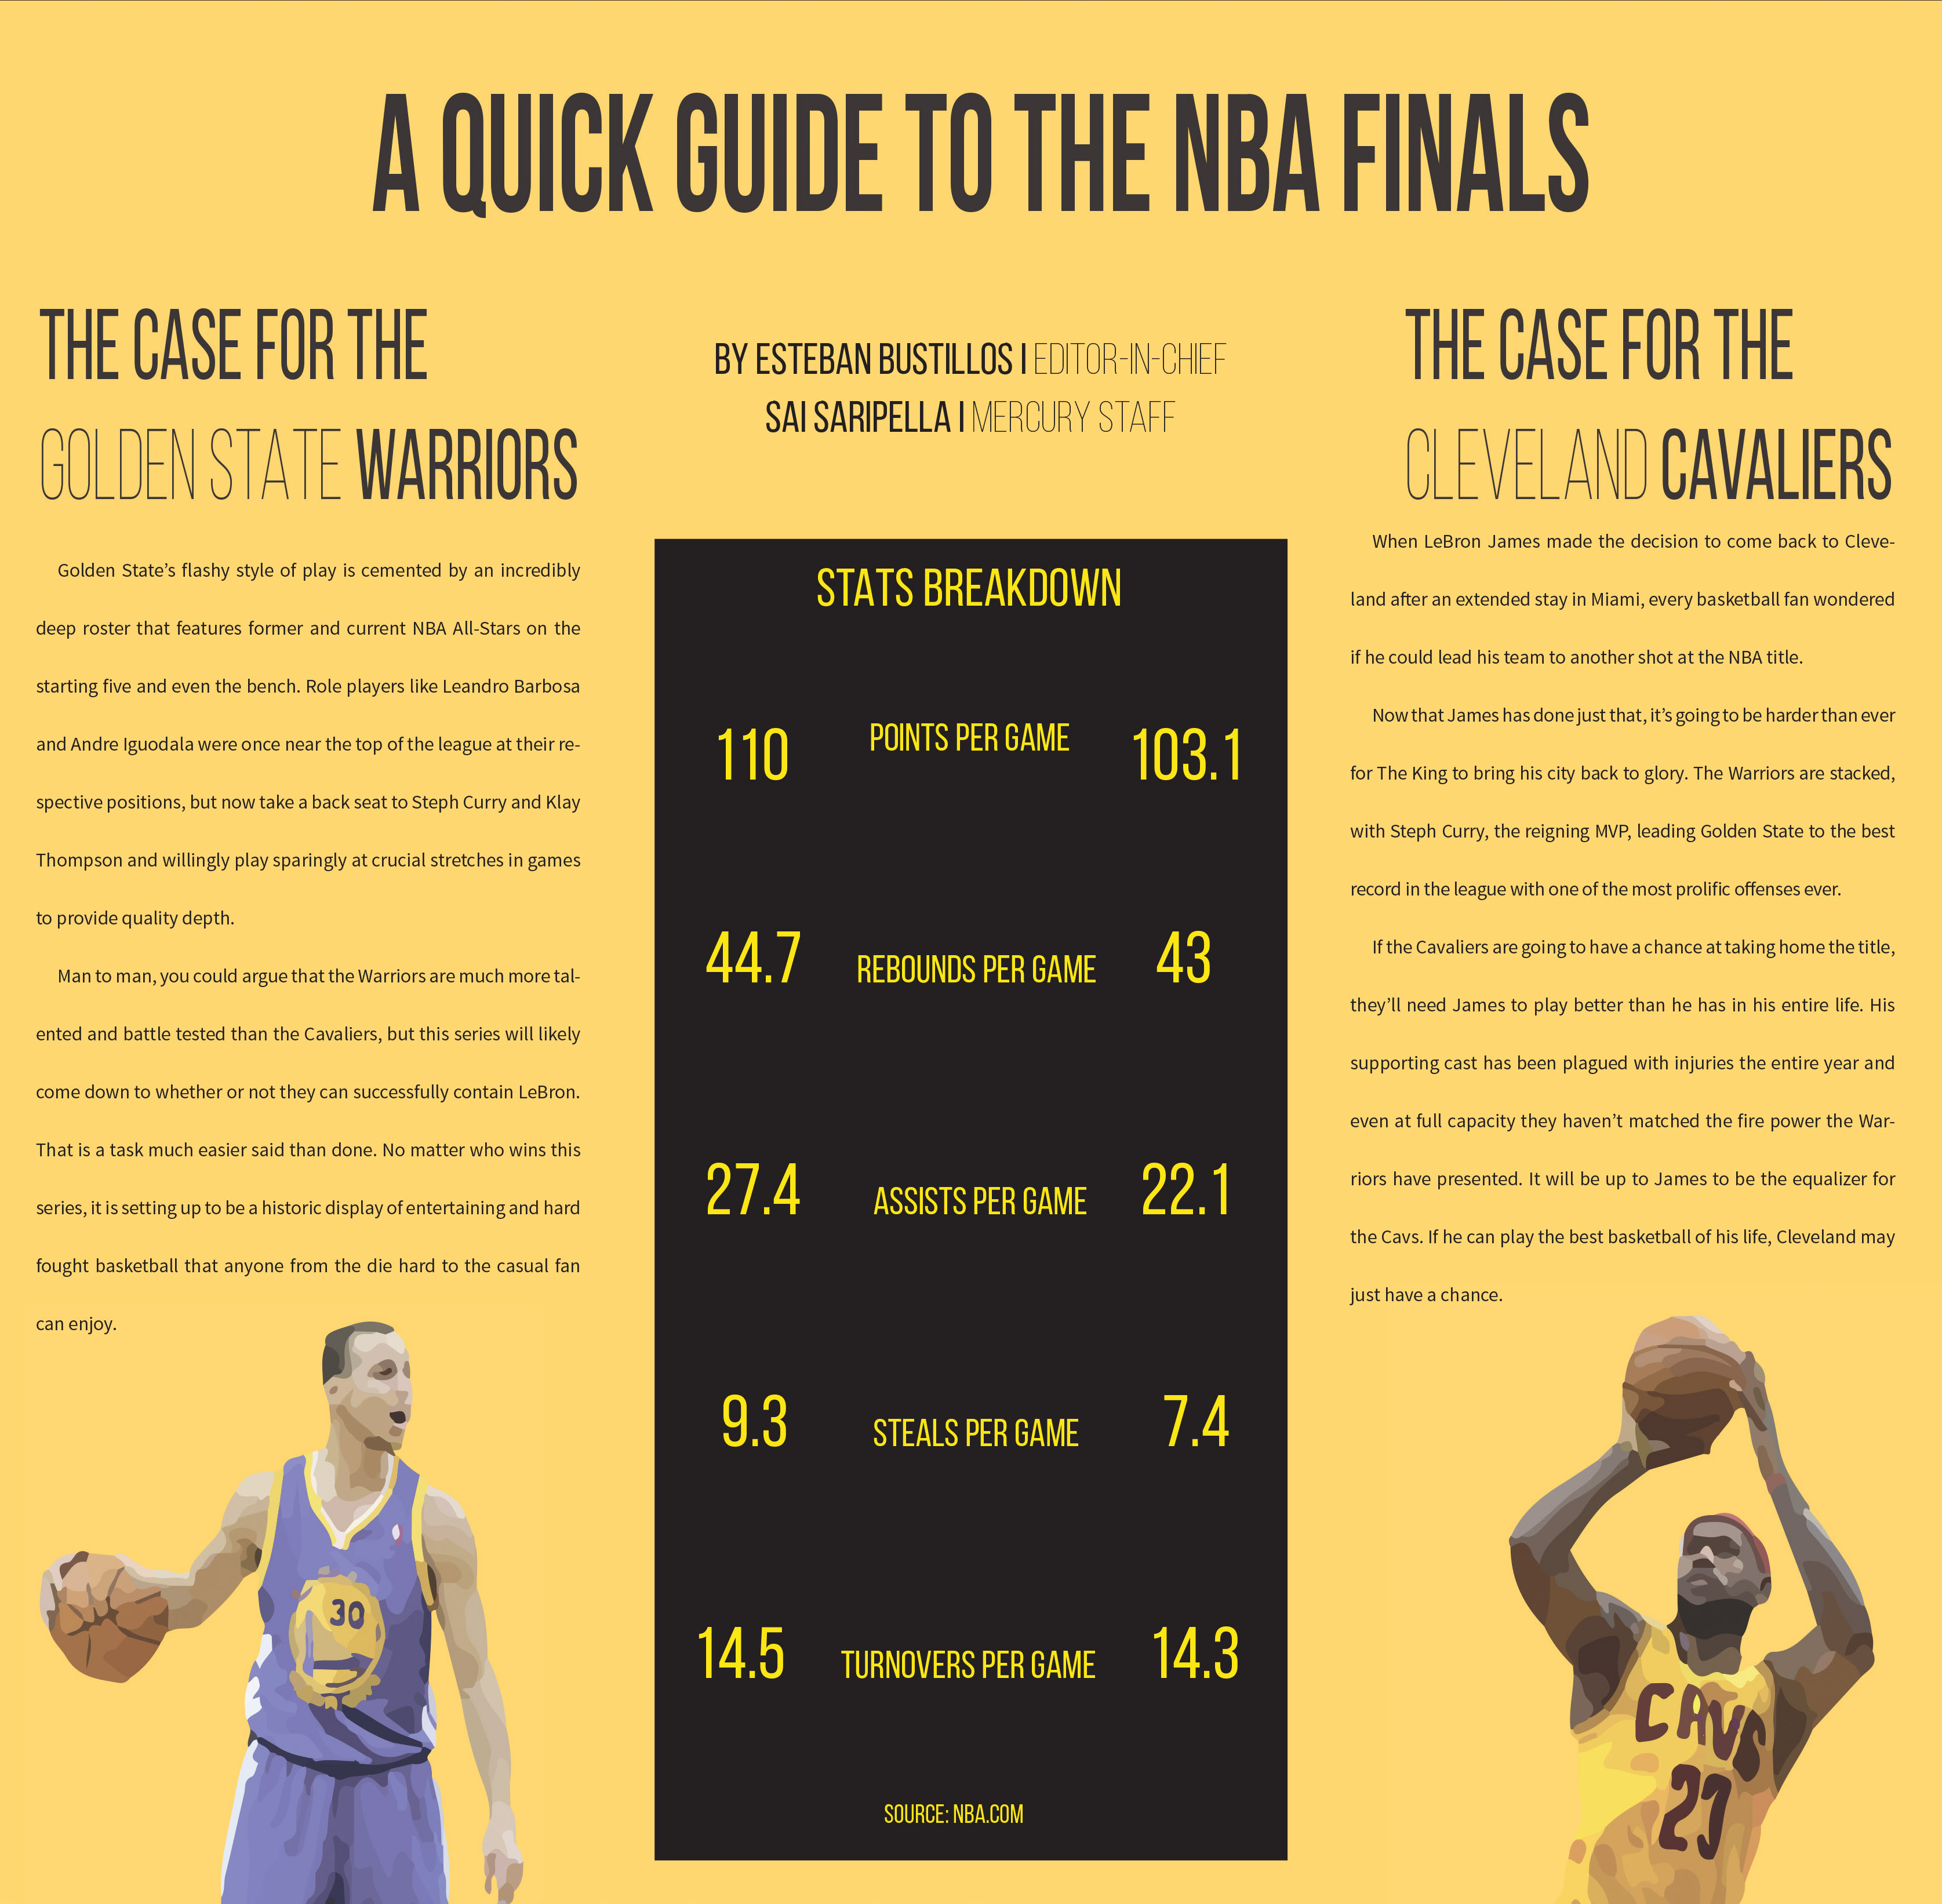 A Quick Guide to the NBA Finals